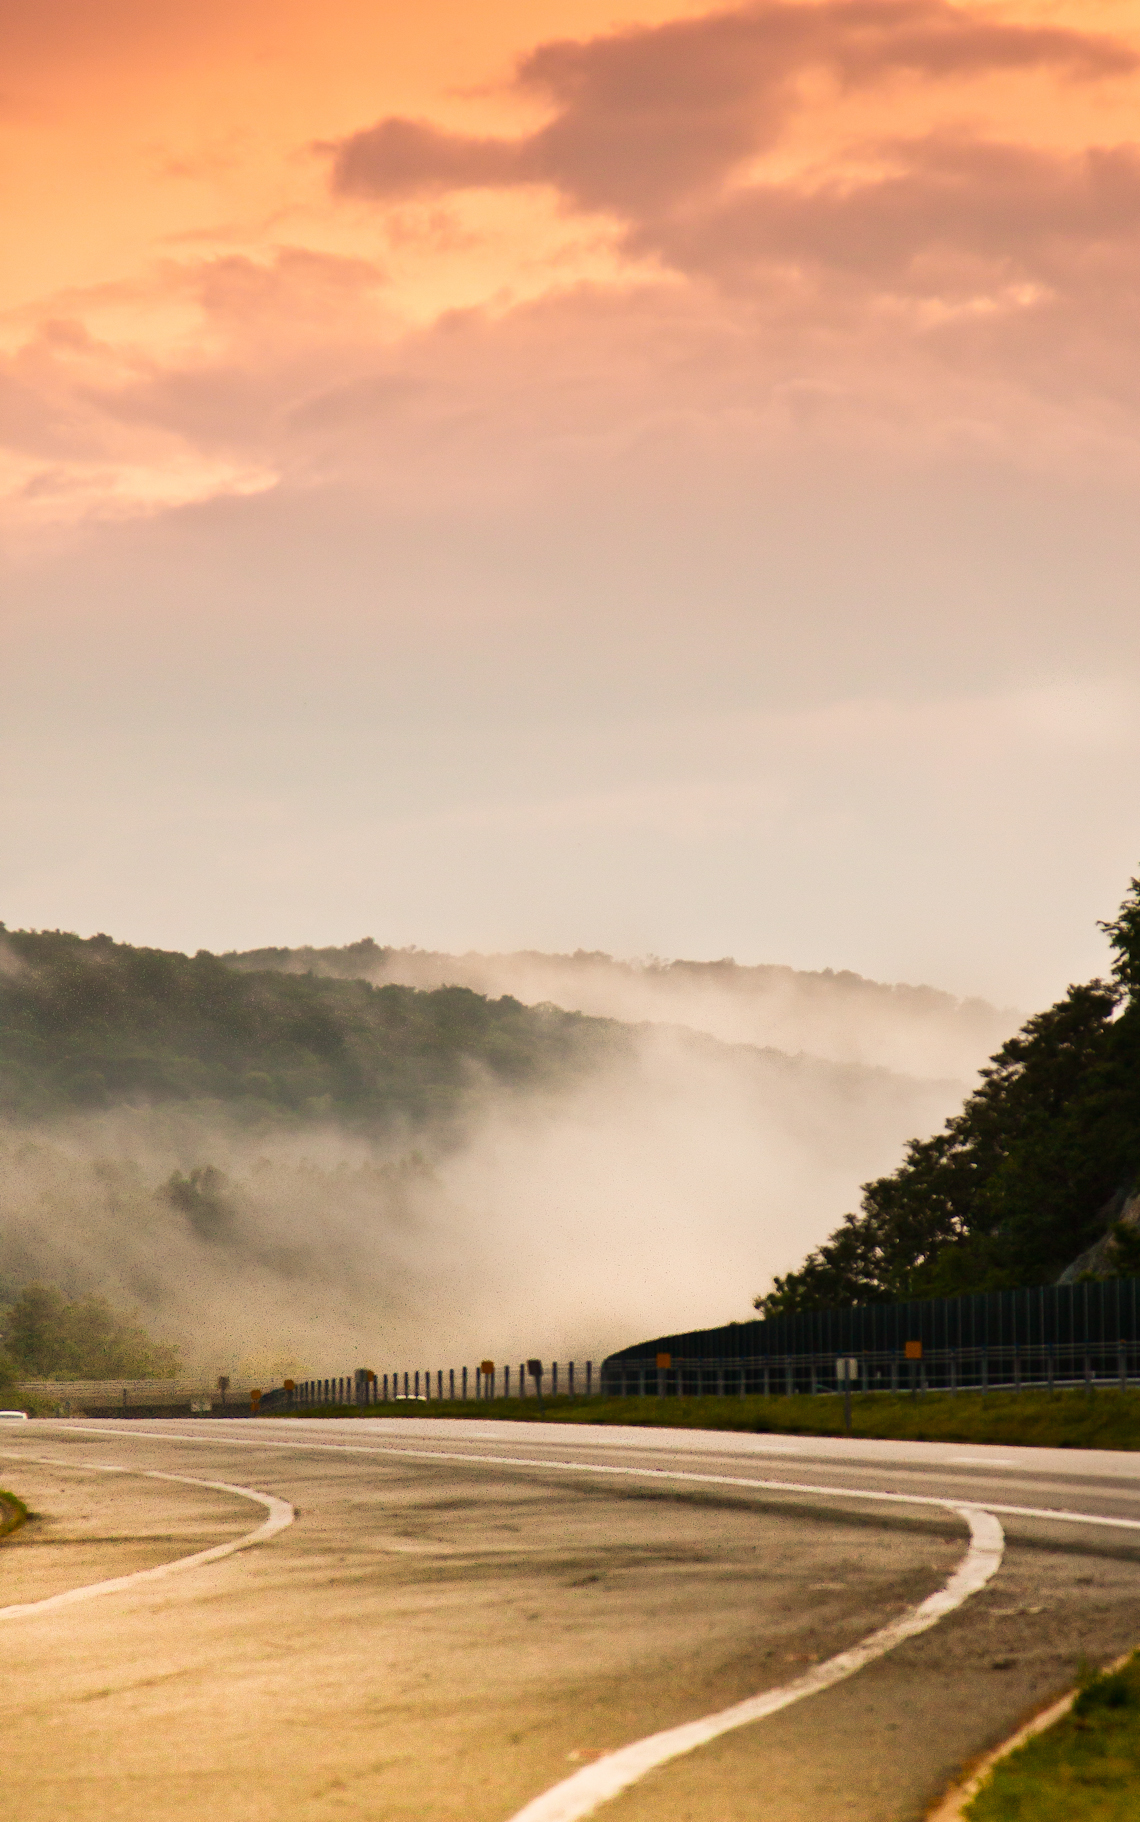 Misty-mountain-road-at-sunset12014-1165